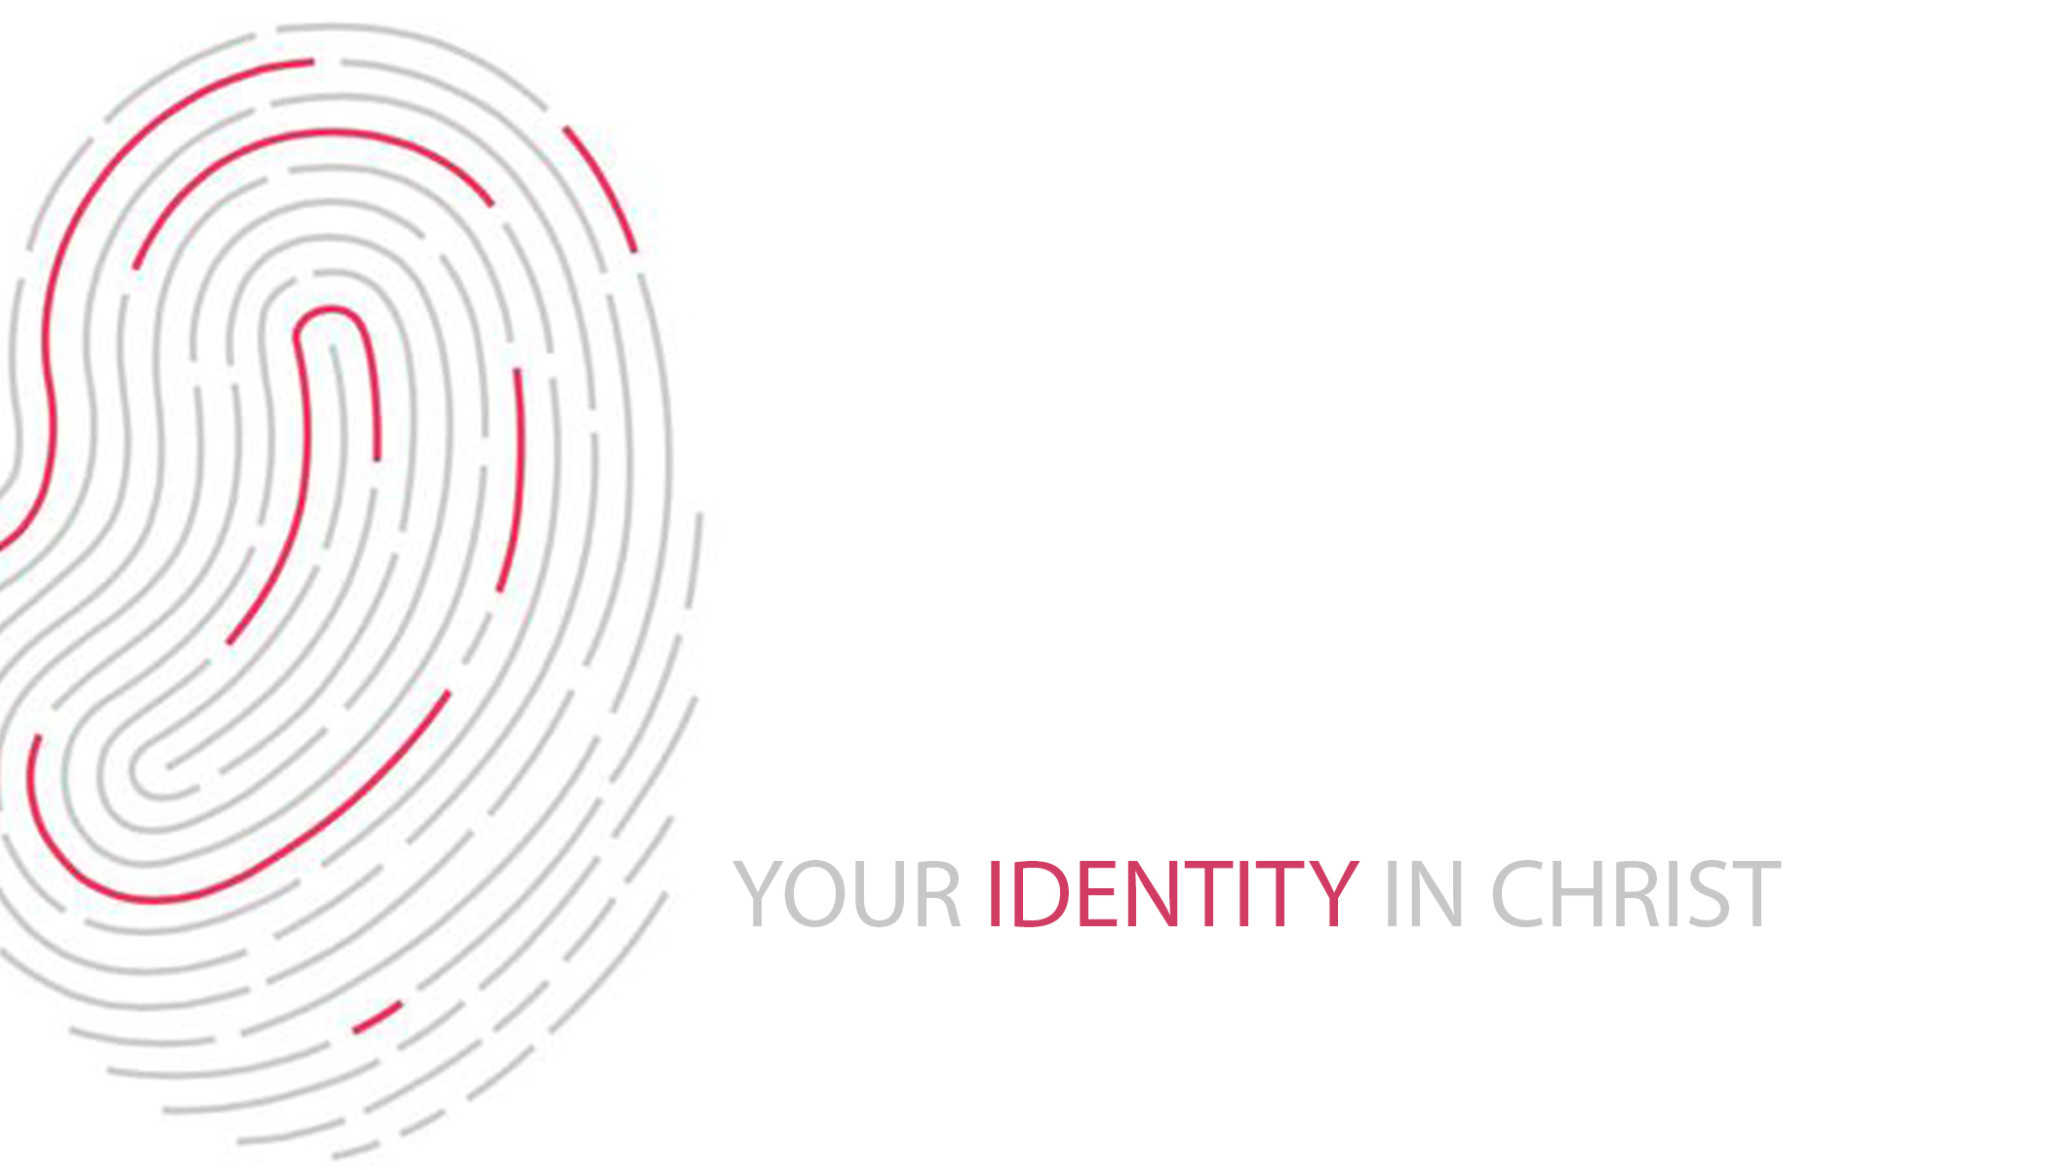 Your Identity in Christ